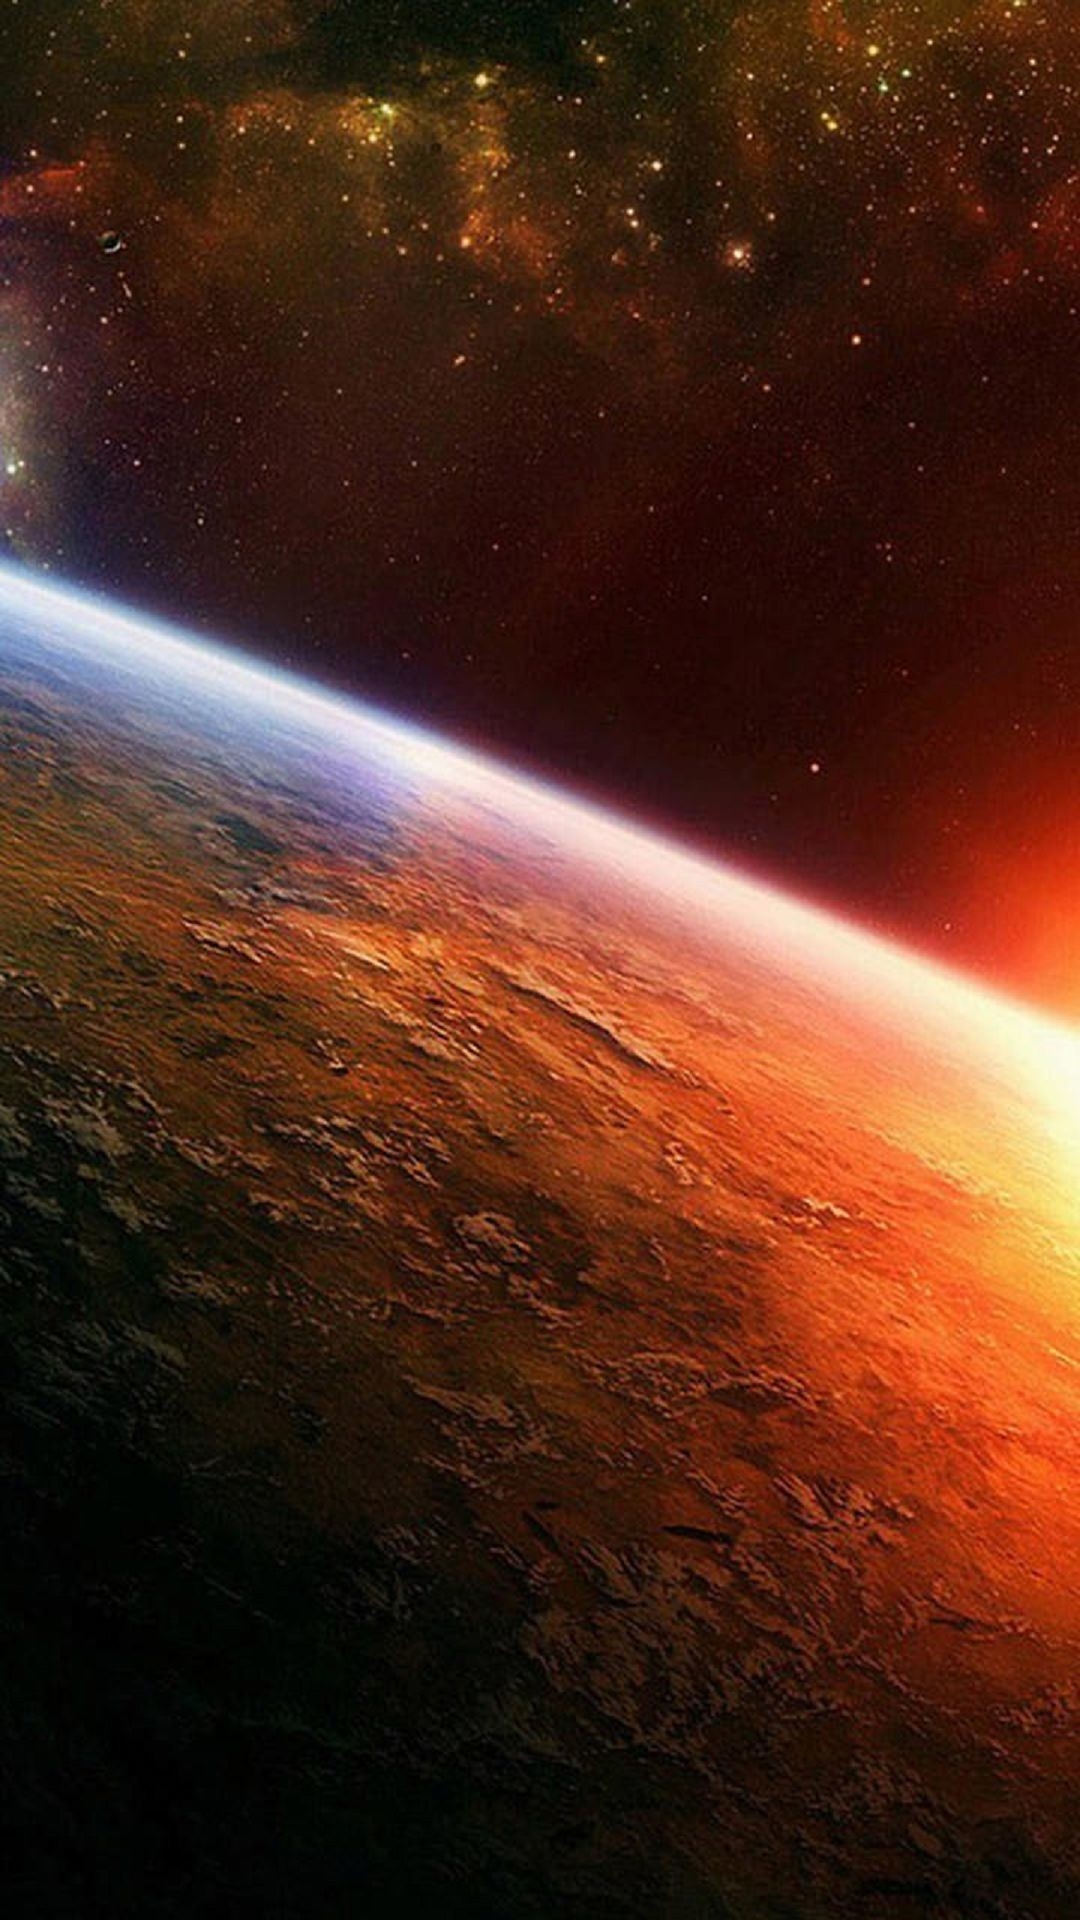 Earth From Space iPhone 6 Plus HD Wallpaper …